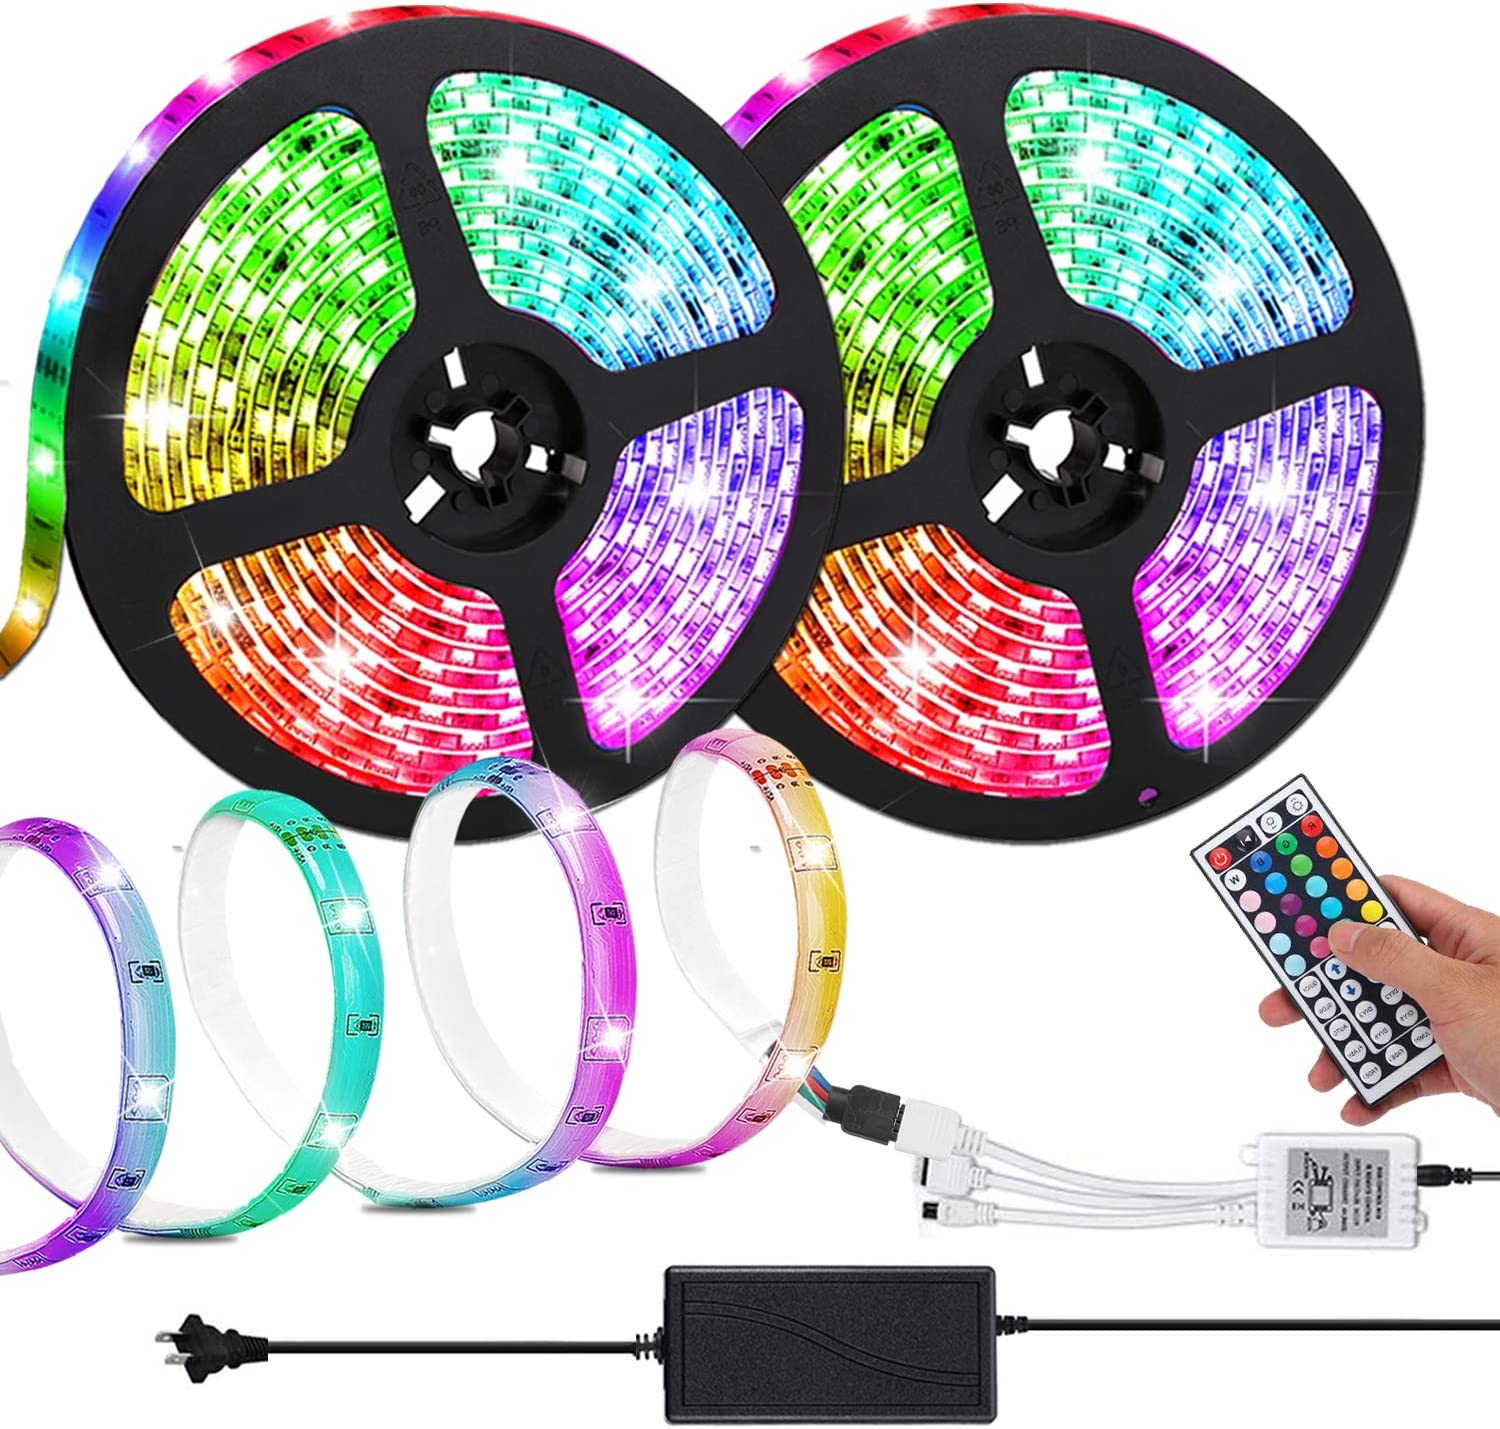 LED Strip Lights,Attuosun 32.8ft/10M RGB Color Changing Self-Adhesive Led Light Strip,Waterproof IP65 5050 300Leds Flexible Rope Light Kit with 44Key IR Remote Controller and 12V Power Supply for Home